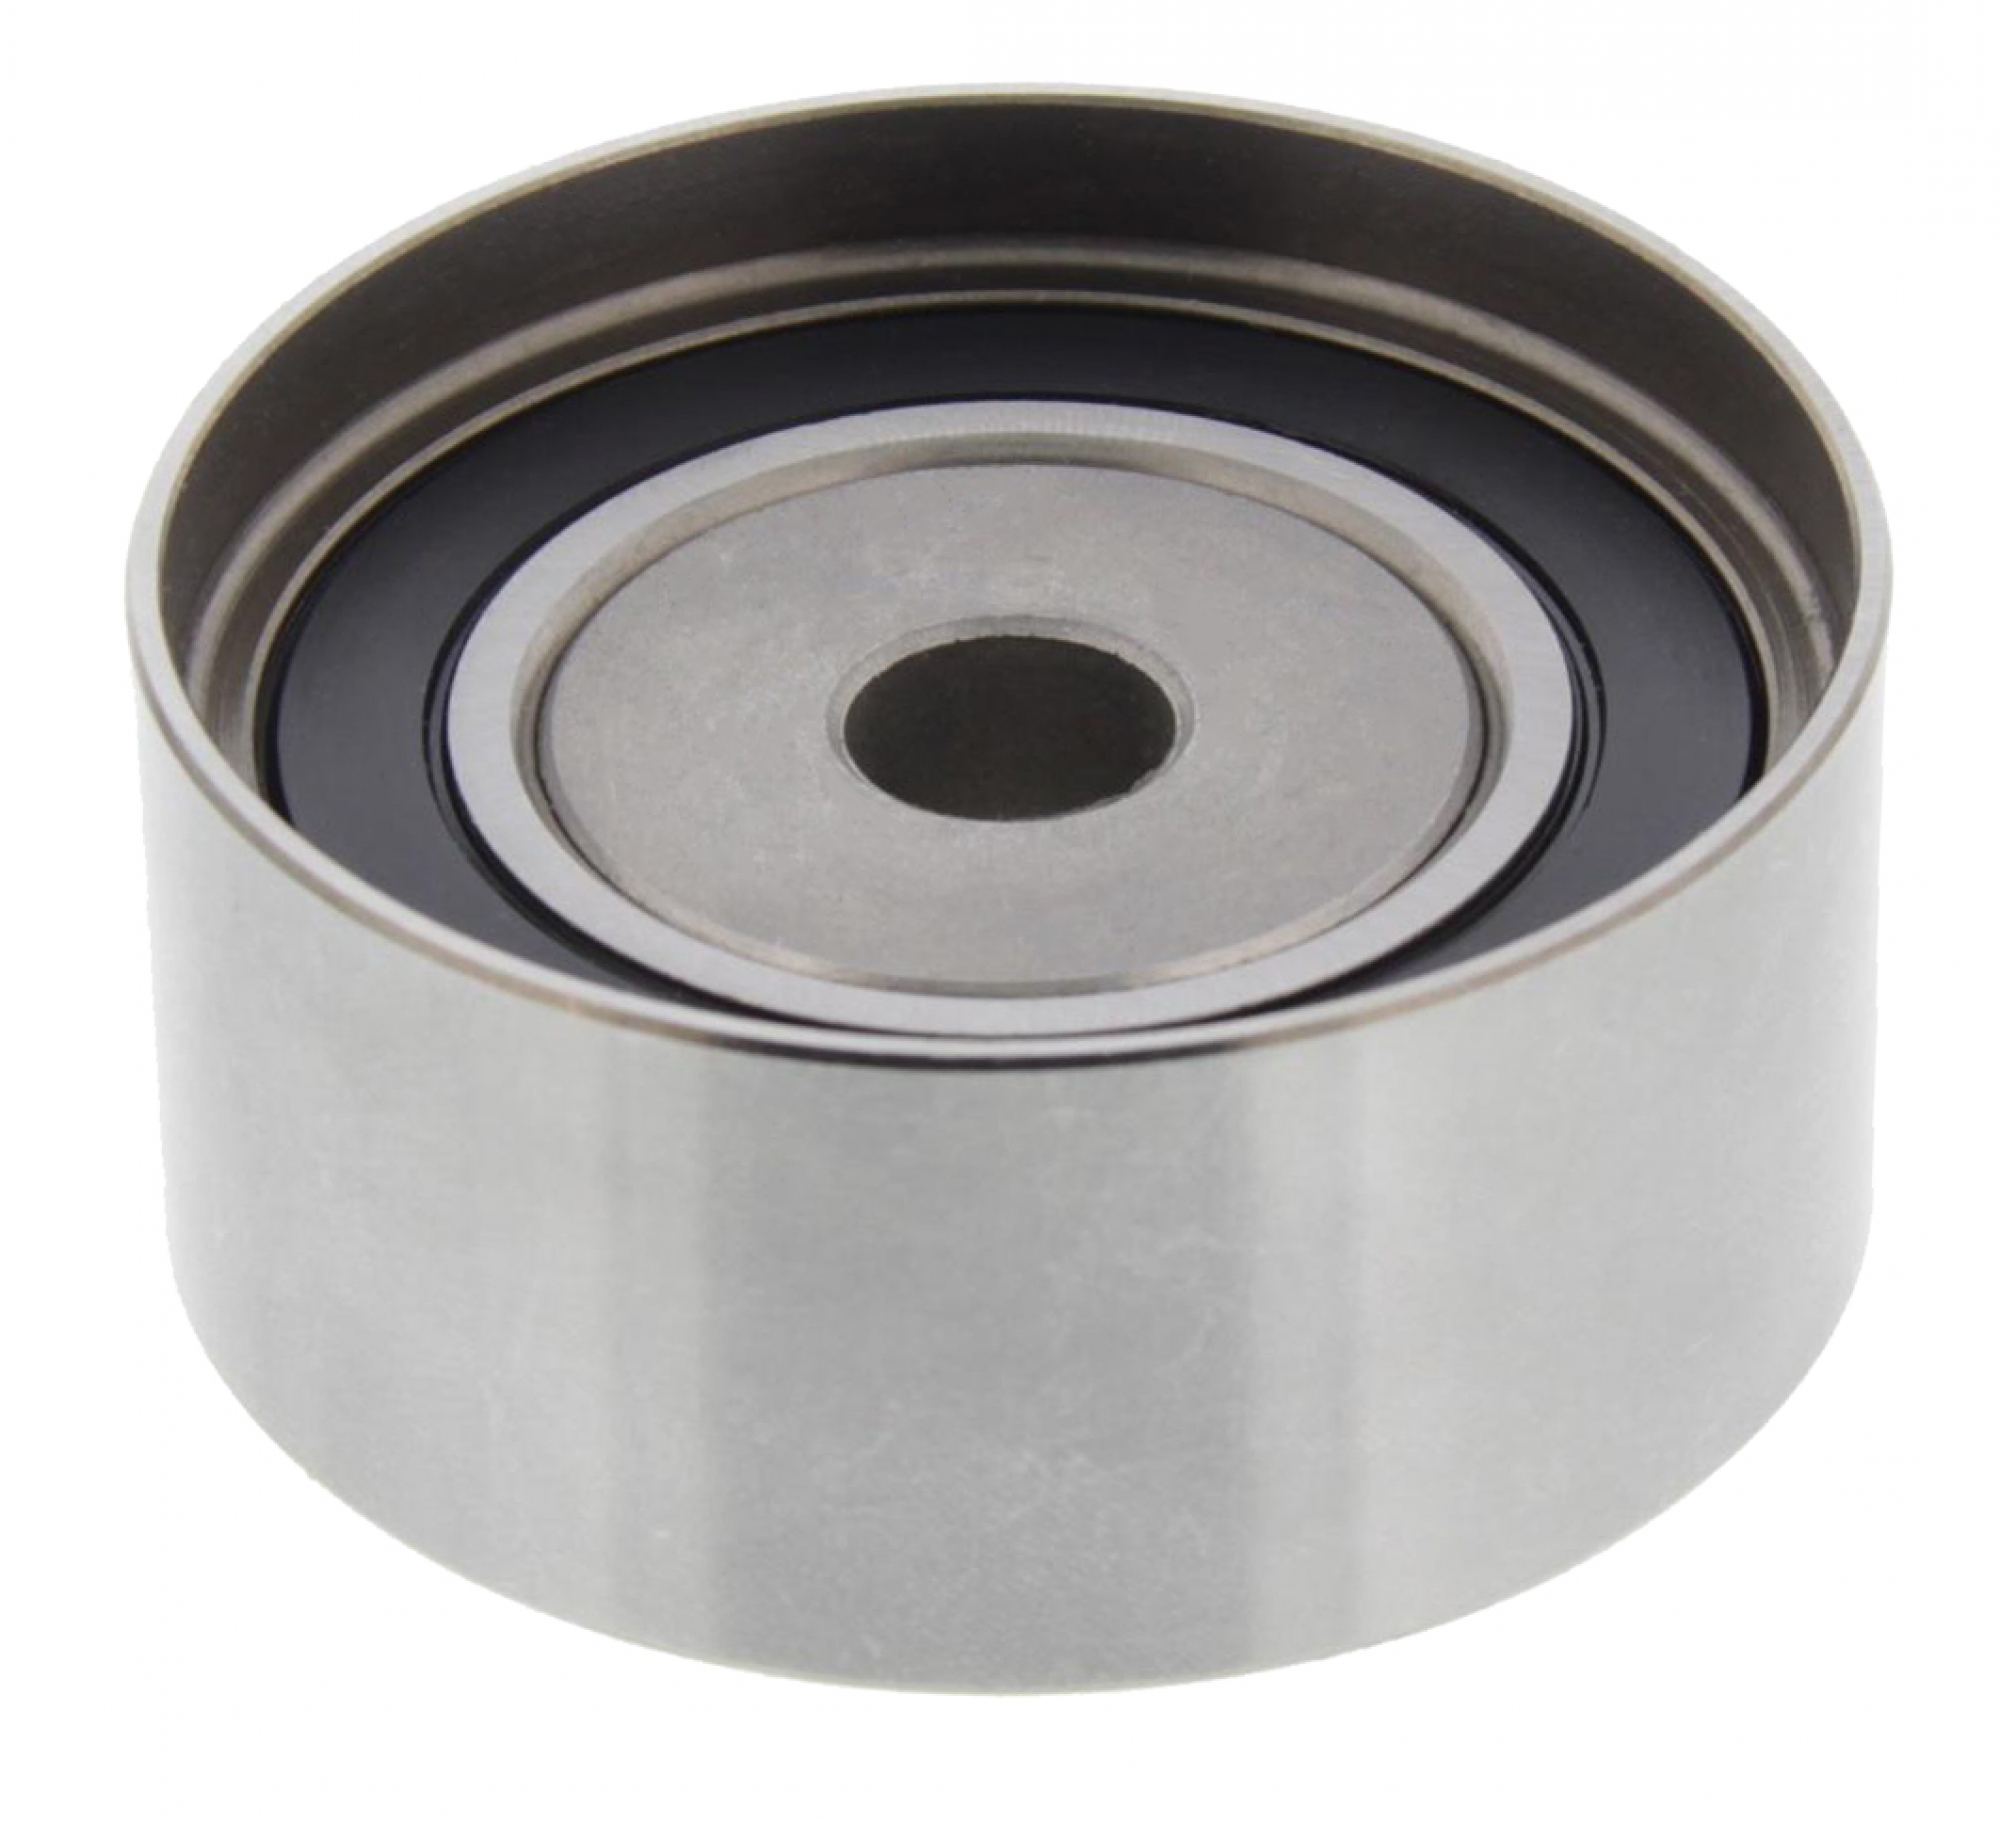 MAPCO 23797 Deflection/Guide Pulley, timing belt